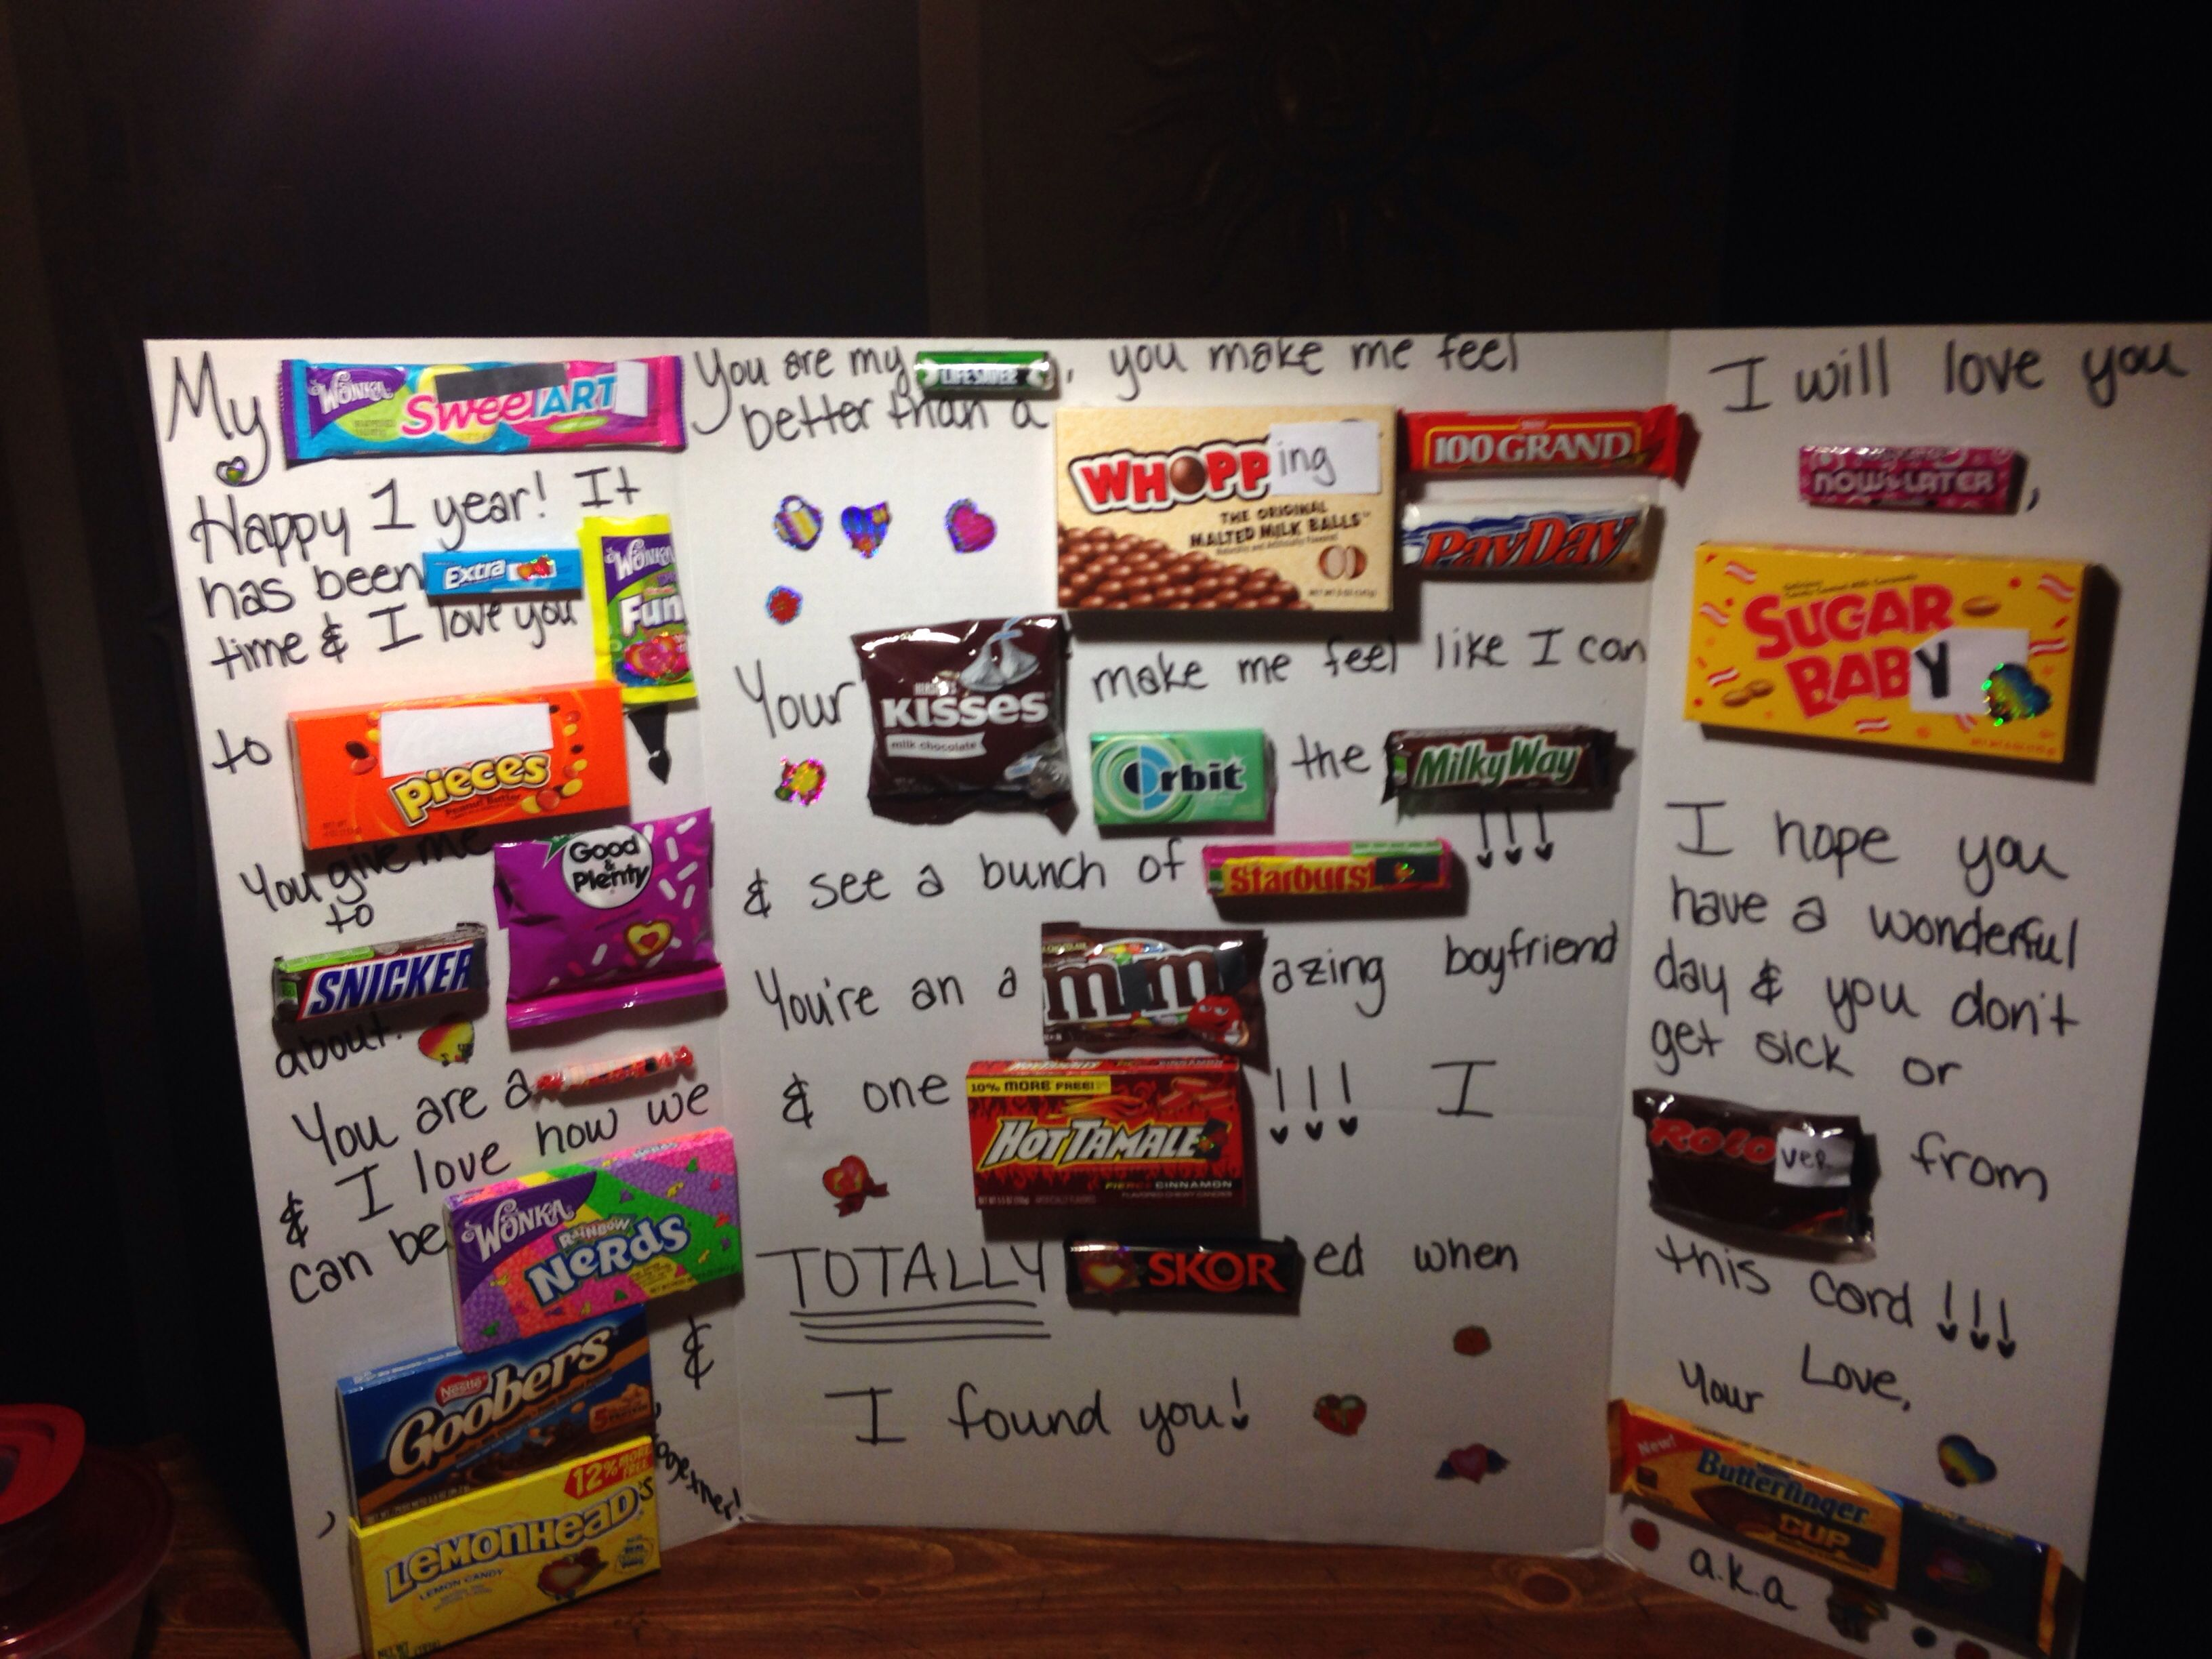 Candy card i made for mine and my boyfriends one year